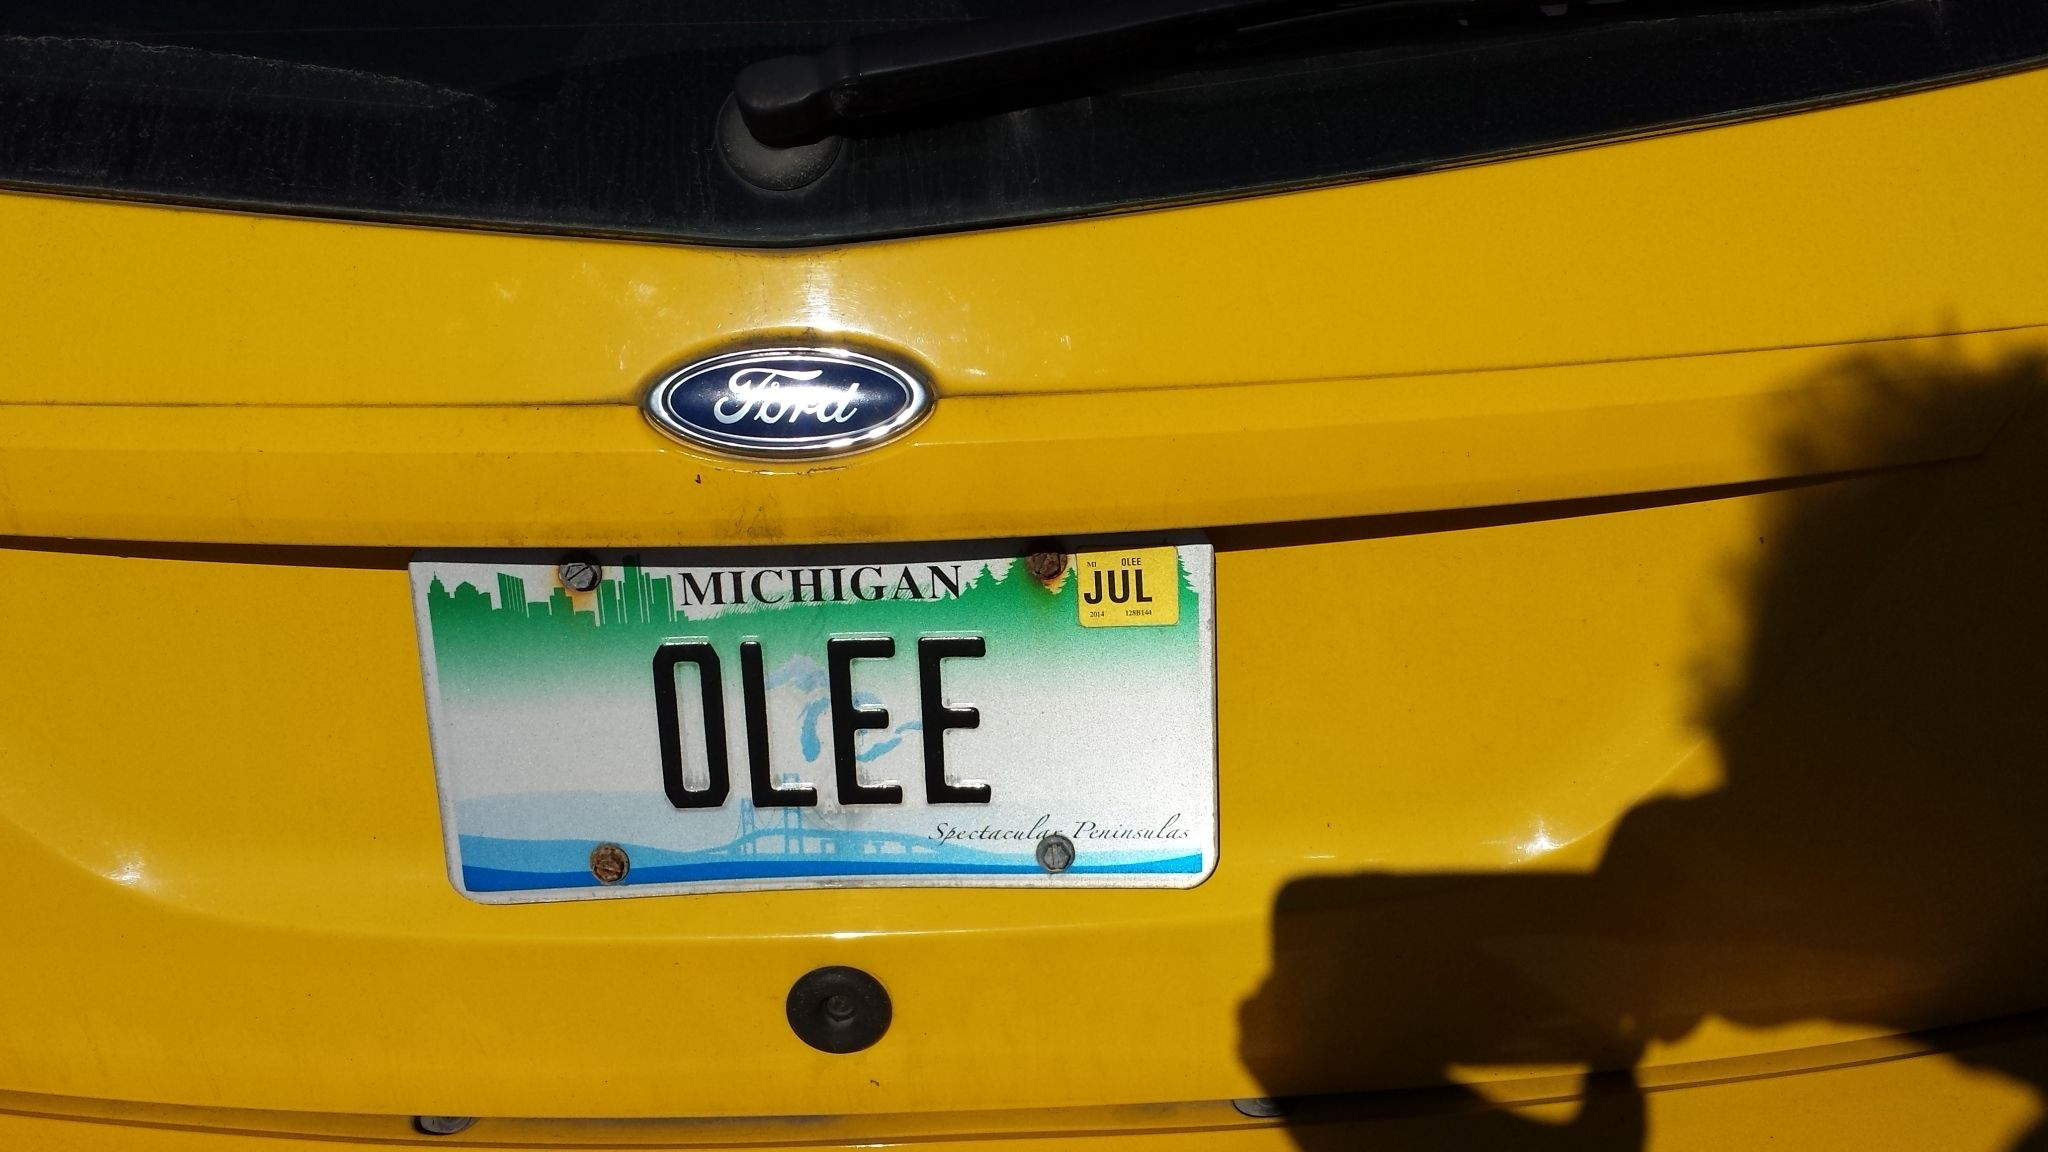 On A Ford Fiesta O Le Vanity Car License Plate Tag Vanity